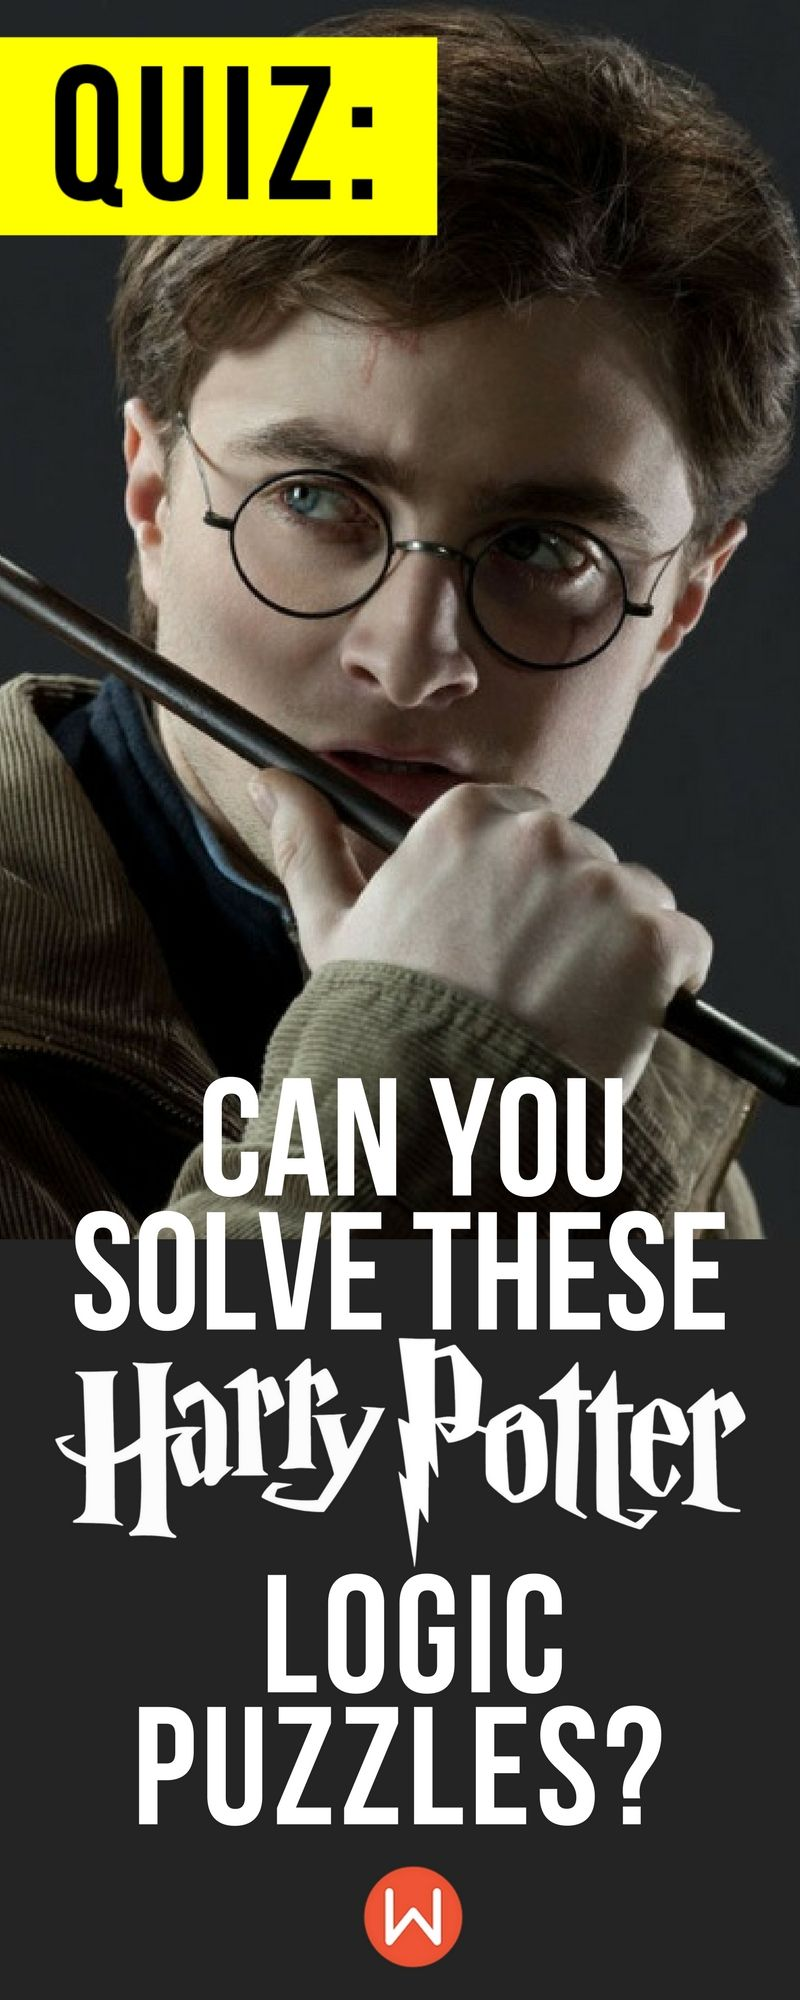 Quiz: Can You Solve These Harry Potter Logic Puzzles